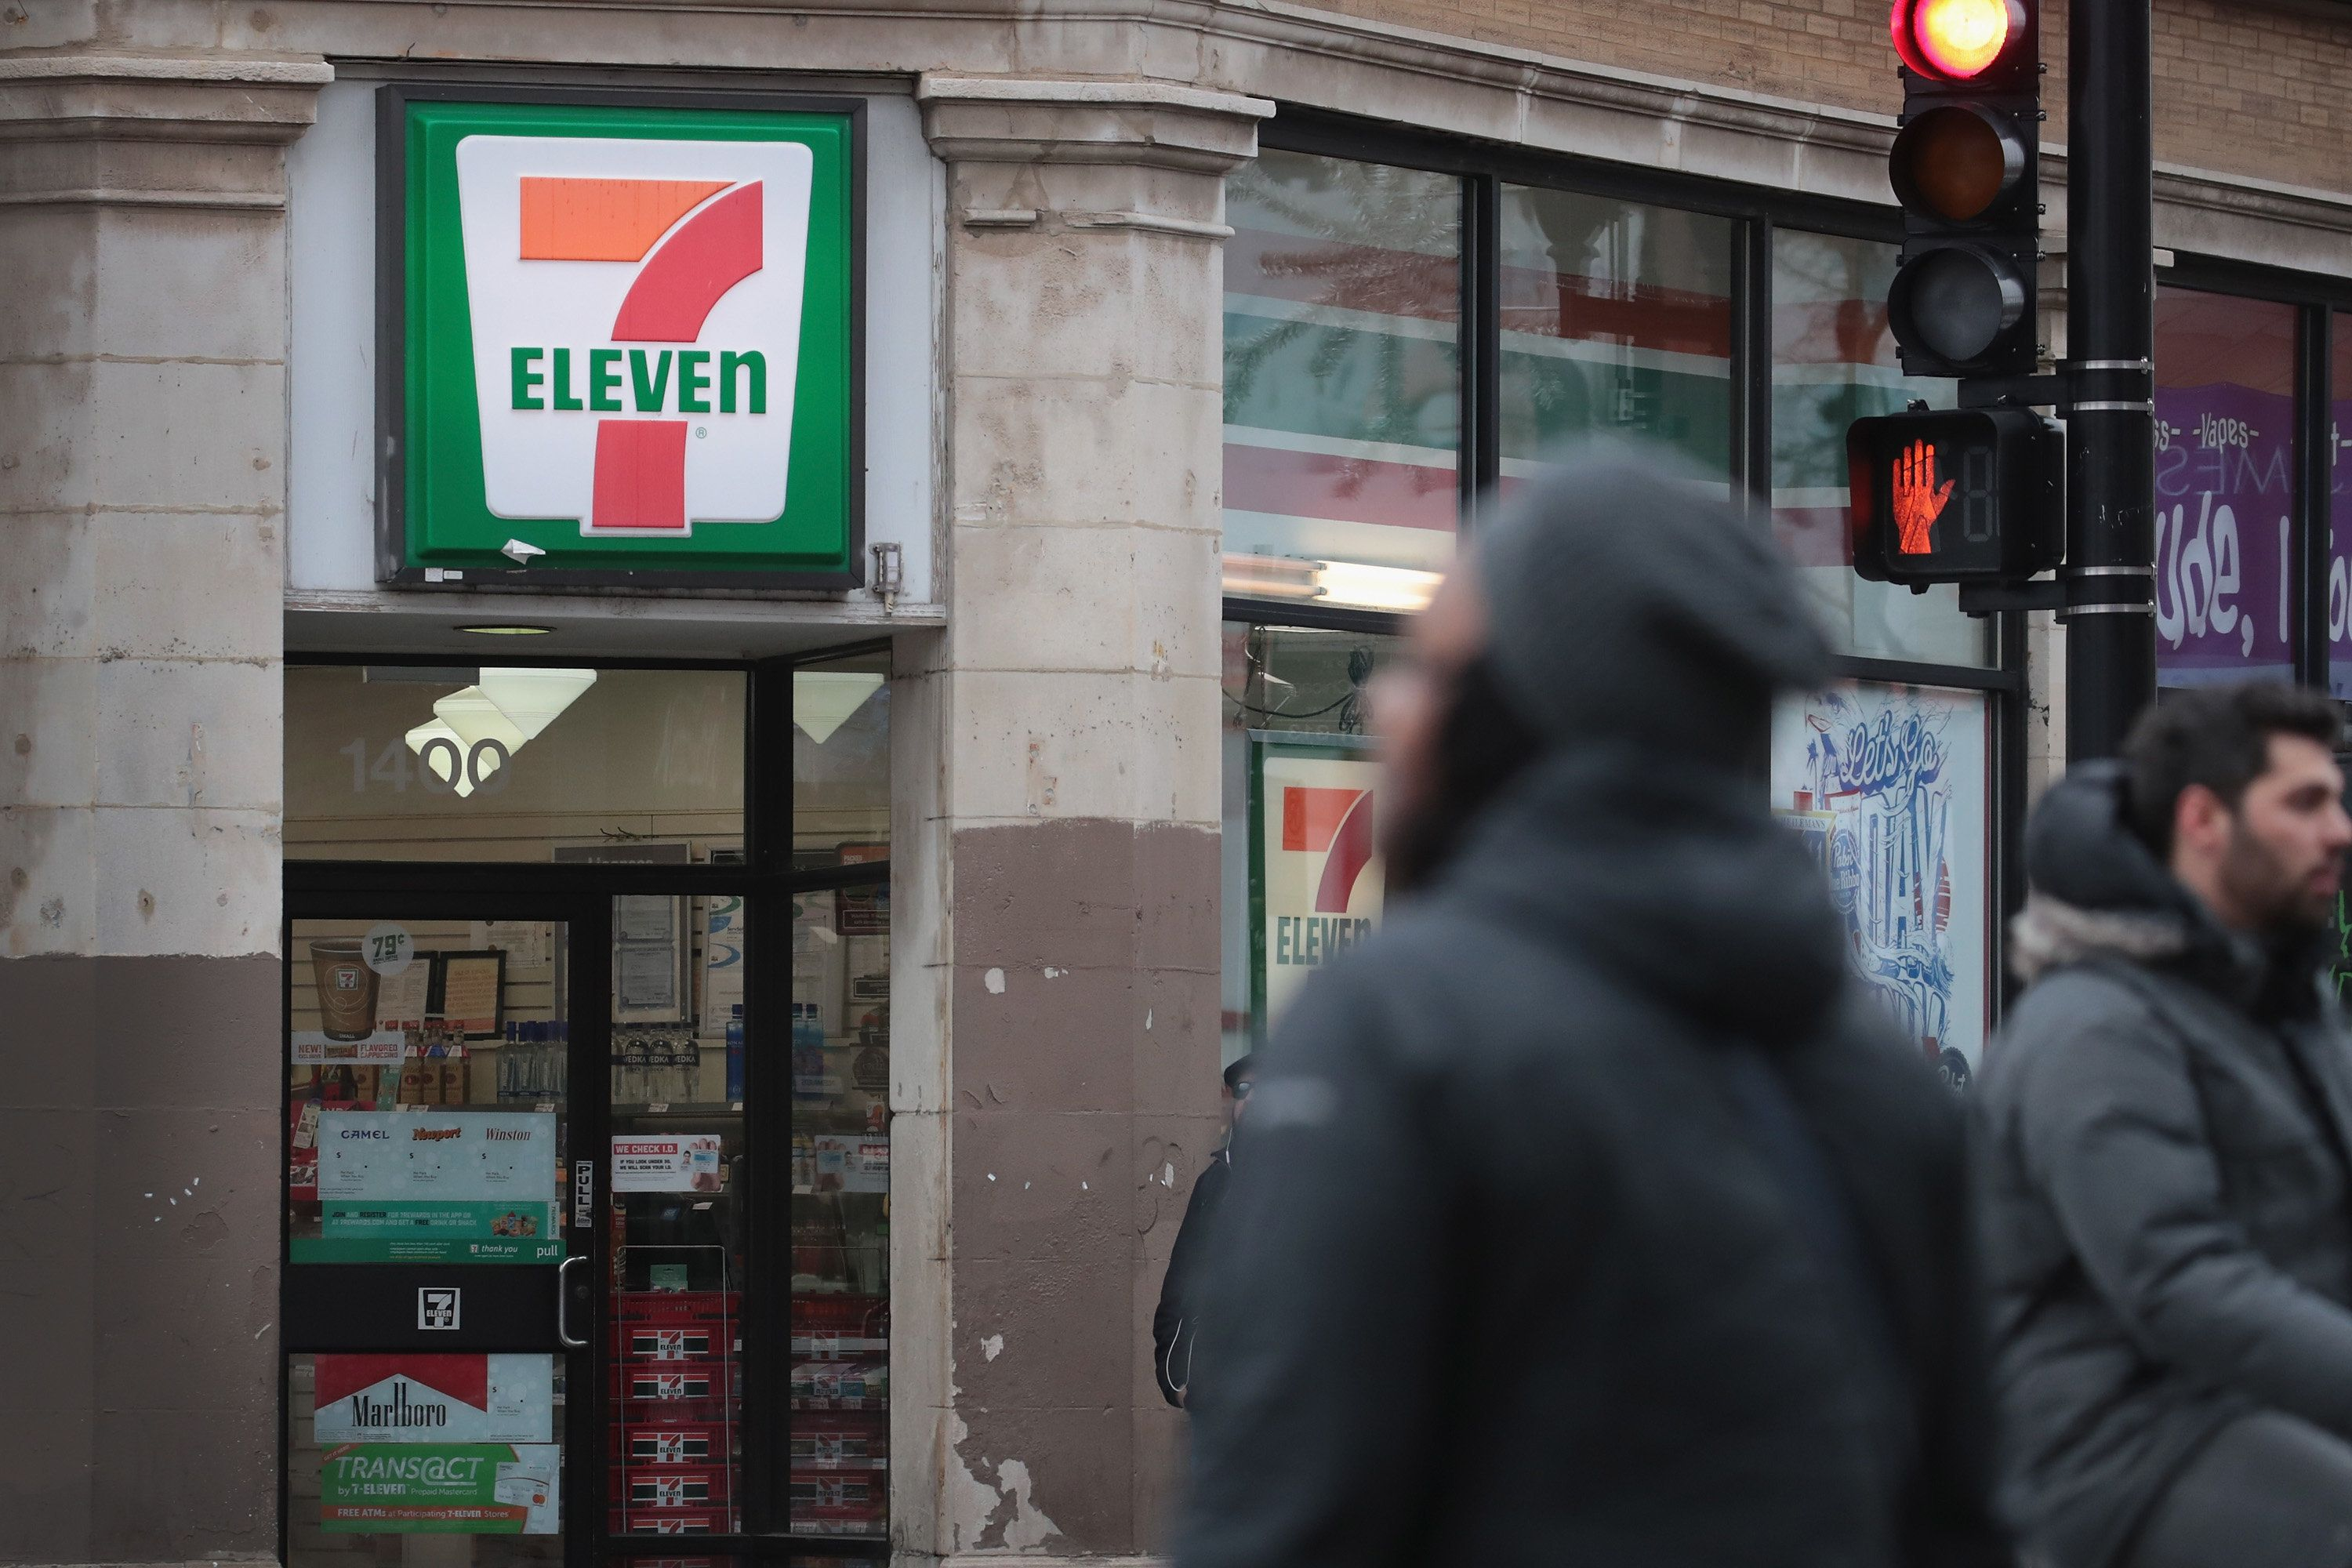 CHICAGO, IL - JANUARY 10:  Pedestrians walk past a 7-Eleven store on January 10, 2018 in Chicago, Illinois. Immigration officials raided nearly 100 7-Eleven stores across the country this morning checking the immigration status of store employees.  (Photo by Scott Olson/Getty Images)